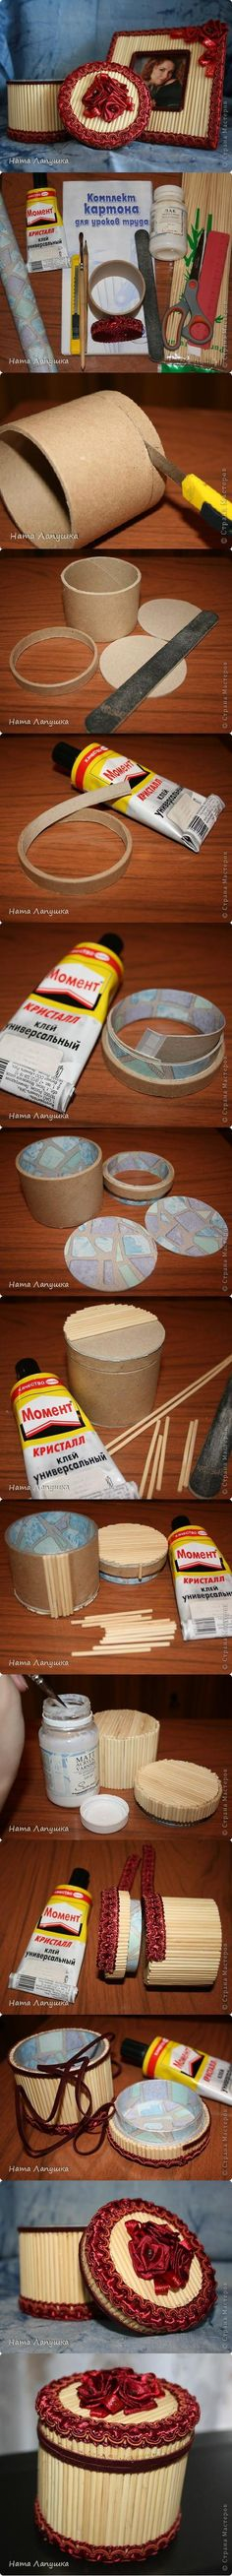 DIY Beautiful Round Box DIY Beautiful Round Box Problem of fitting the lid solved. Fun Crafts, Diy And Crafts, Crafts For Kids, Cardboard Crafts, Paper Crafts, Shoebox Crafts, Cardboard Rolls, Diy Projects To Try, Craft Projects